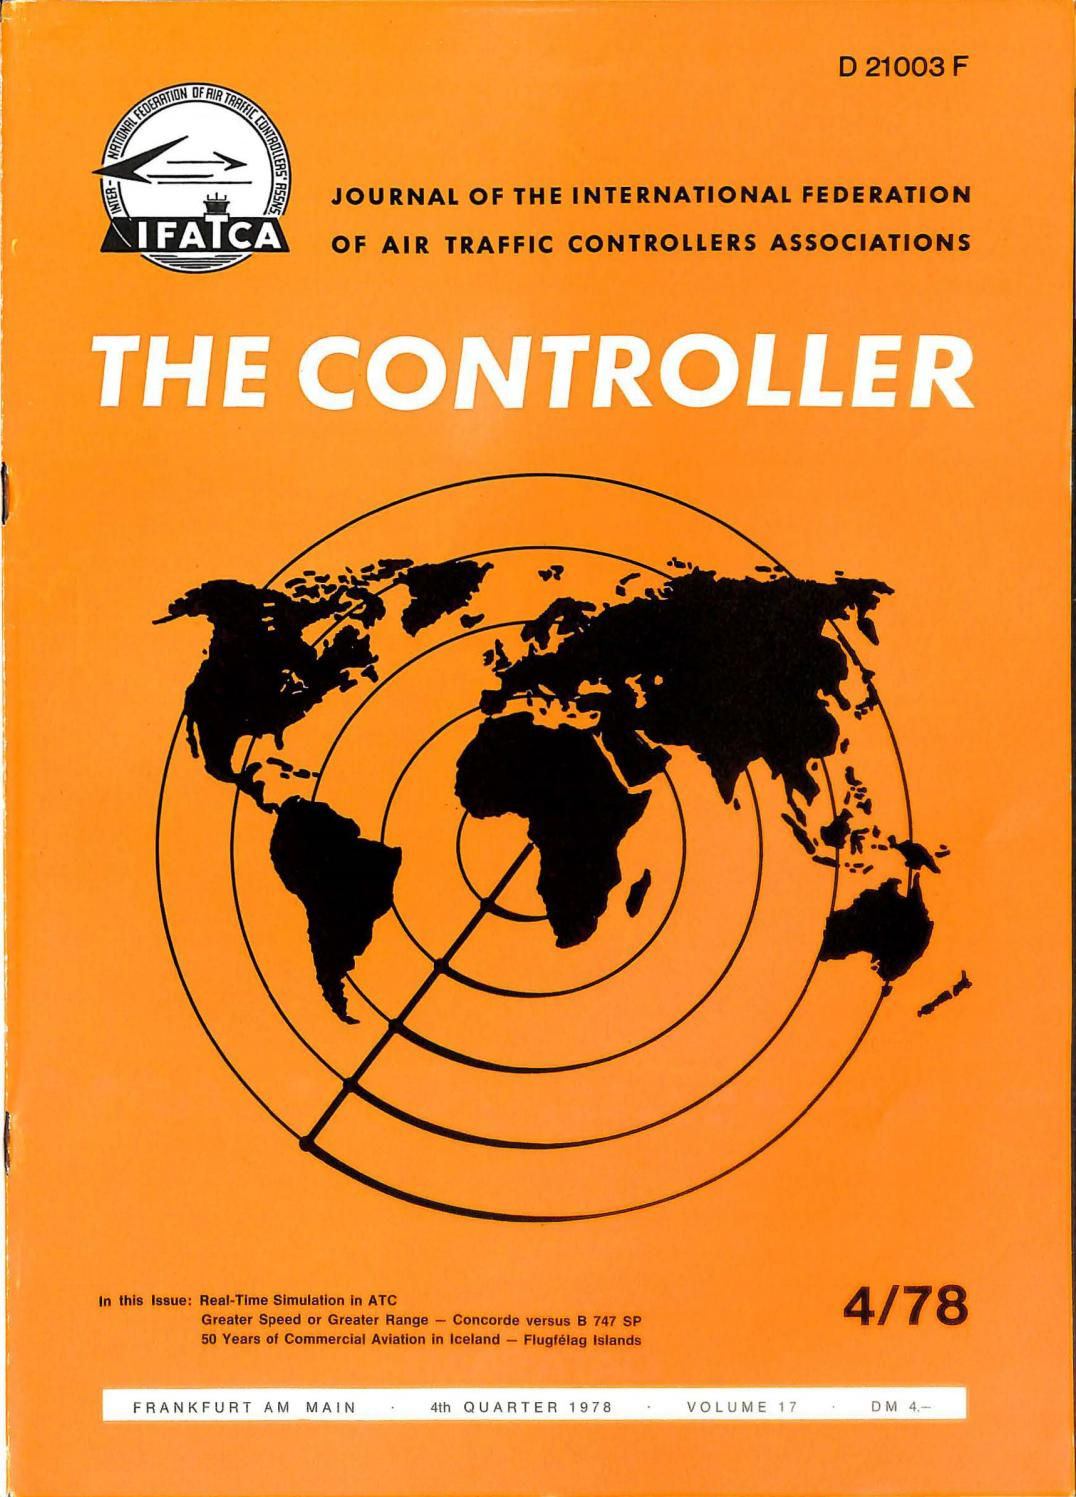 IFATCA The Controller - December 1978 by IFATCA - issuu